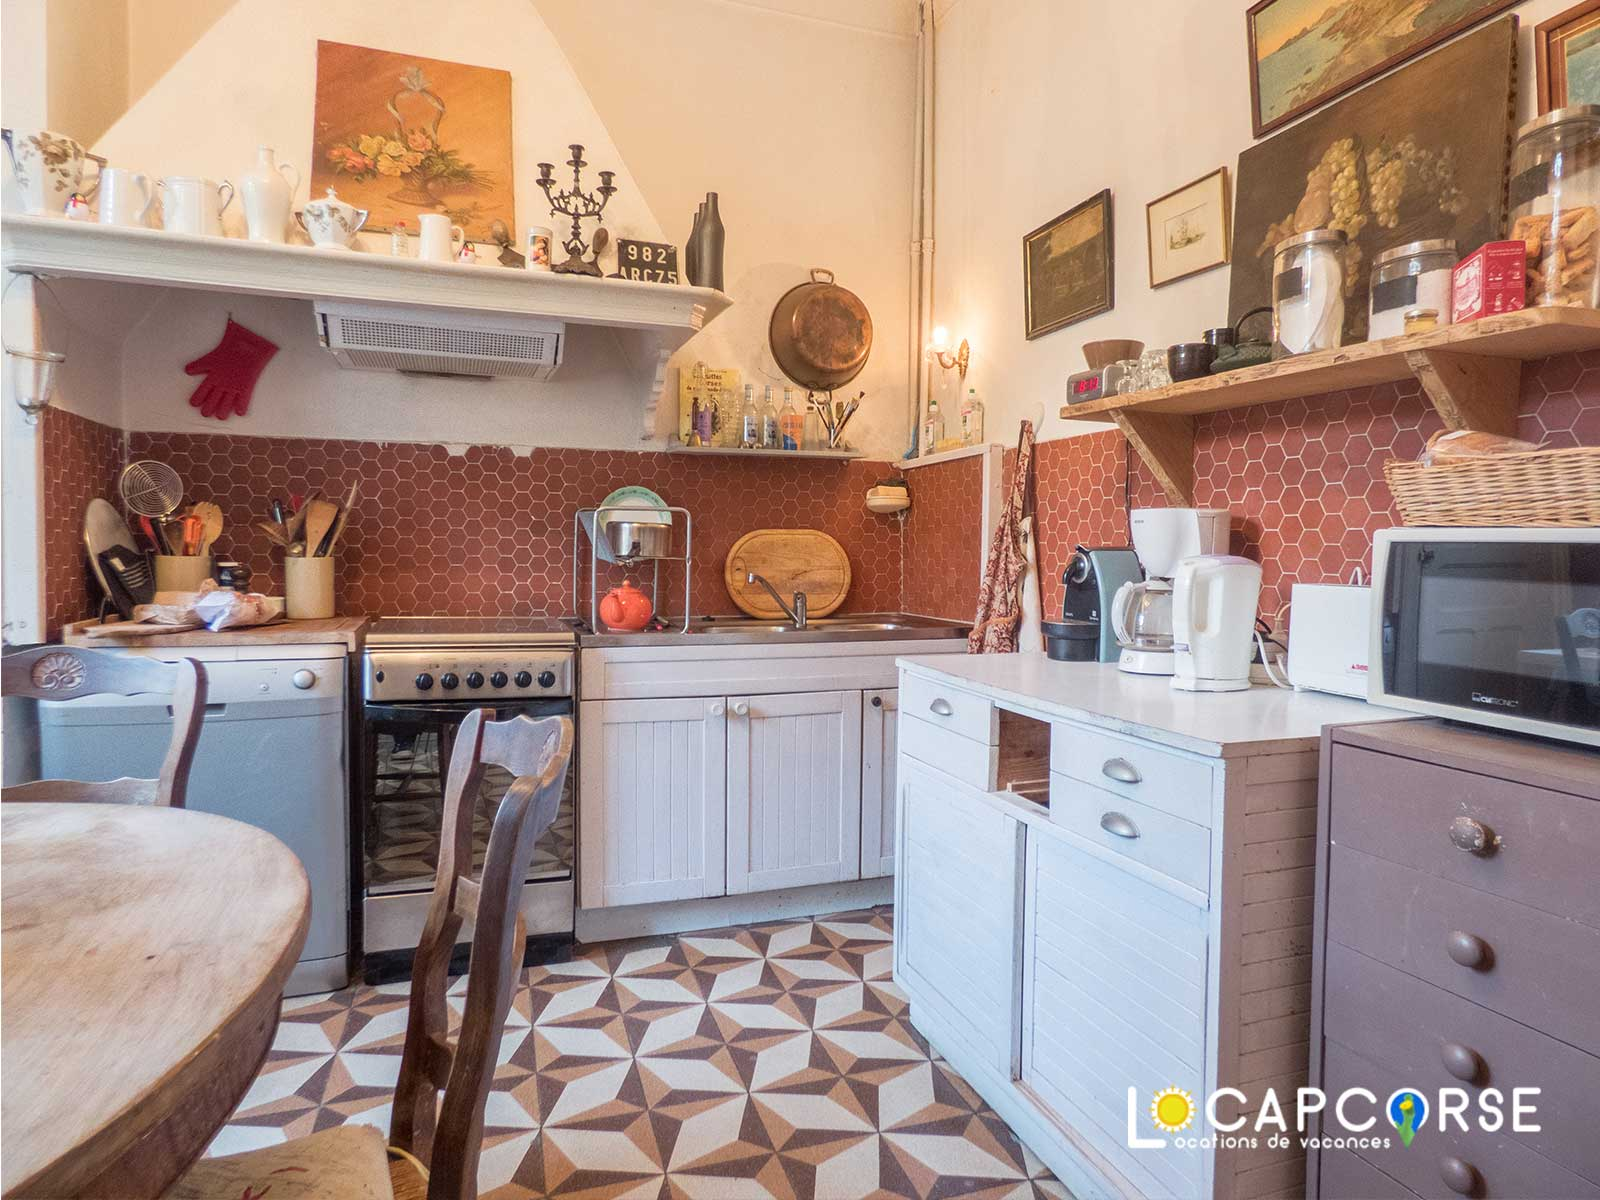 Locations Cap Corse - Another view of the kitchen with its old-fashioned tiles